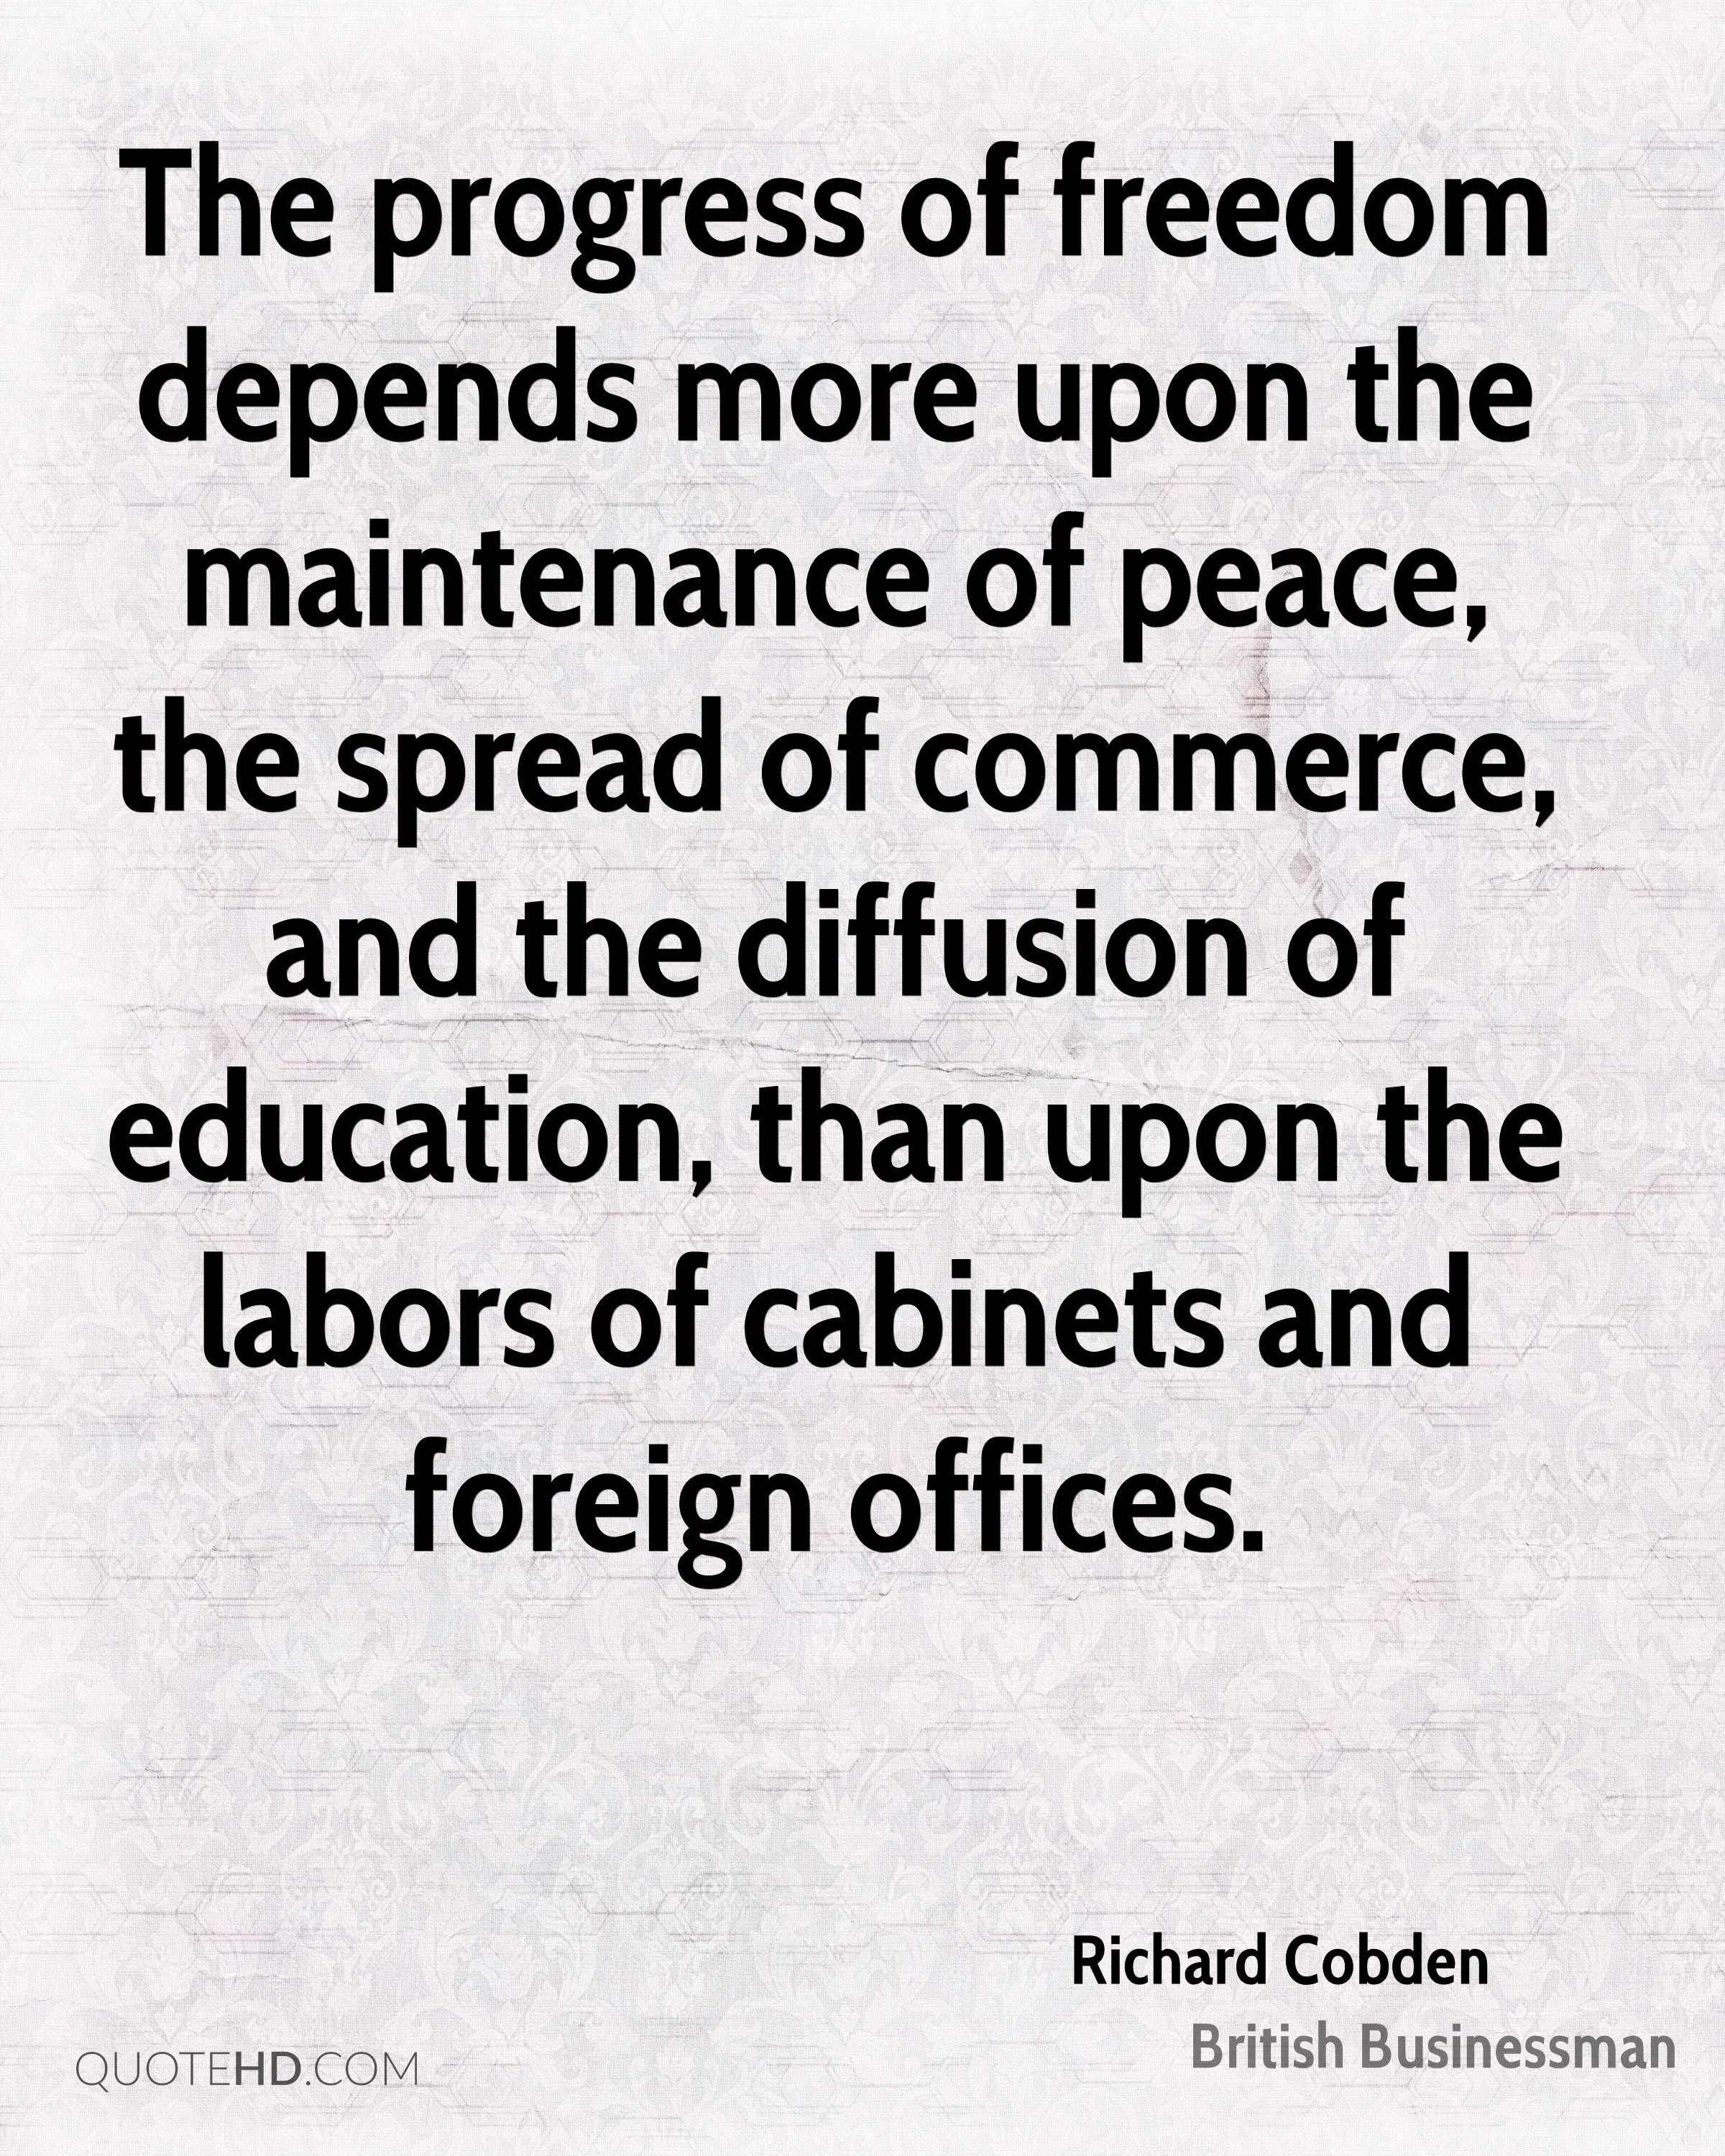 The progress of freedom depends more upon the maintenance of peace, the spread of commerce, and the diffusion of education, than upon the labors of cabinets and foreign offices.